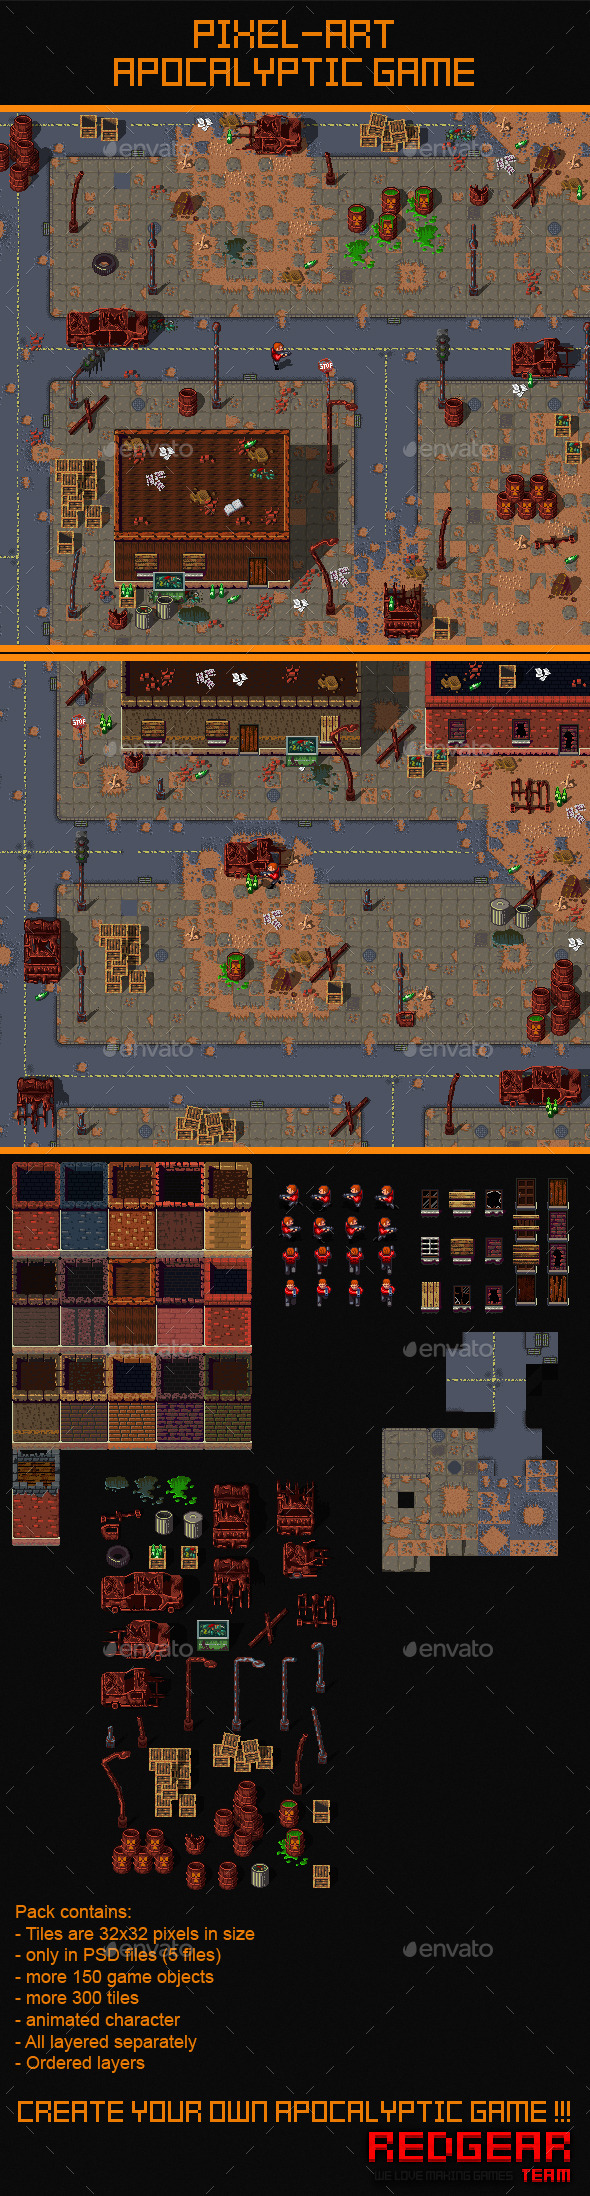 2D Pixel Art Apocalyptic Game Assets - Game Kits Game Assets